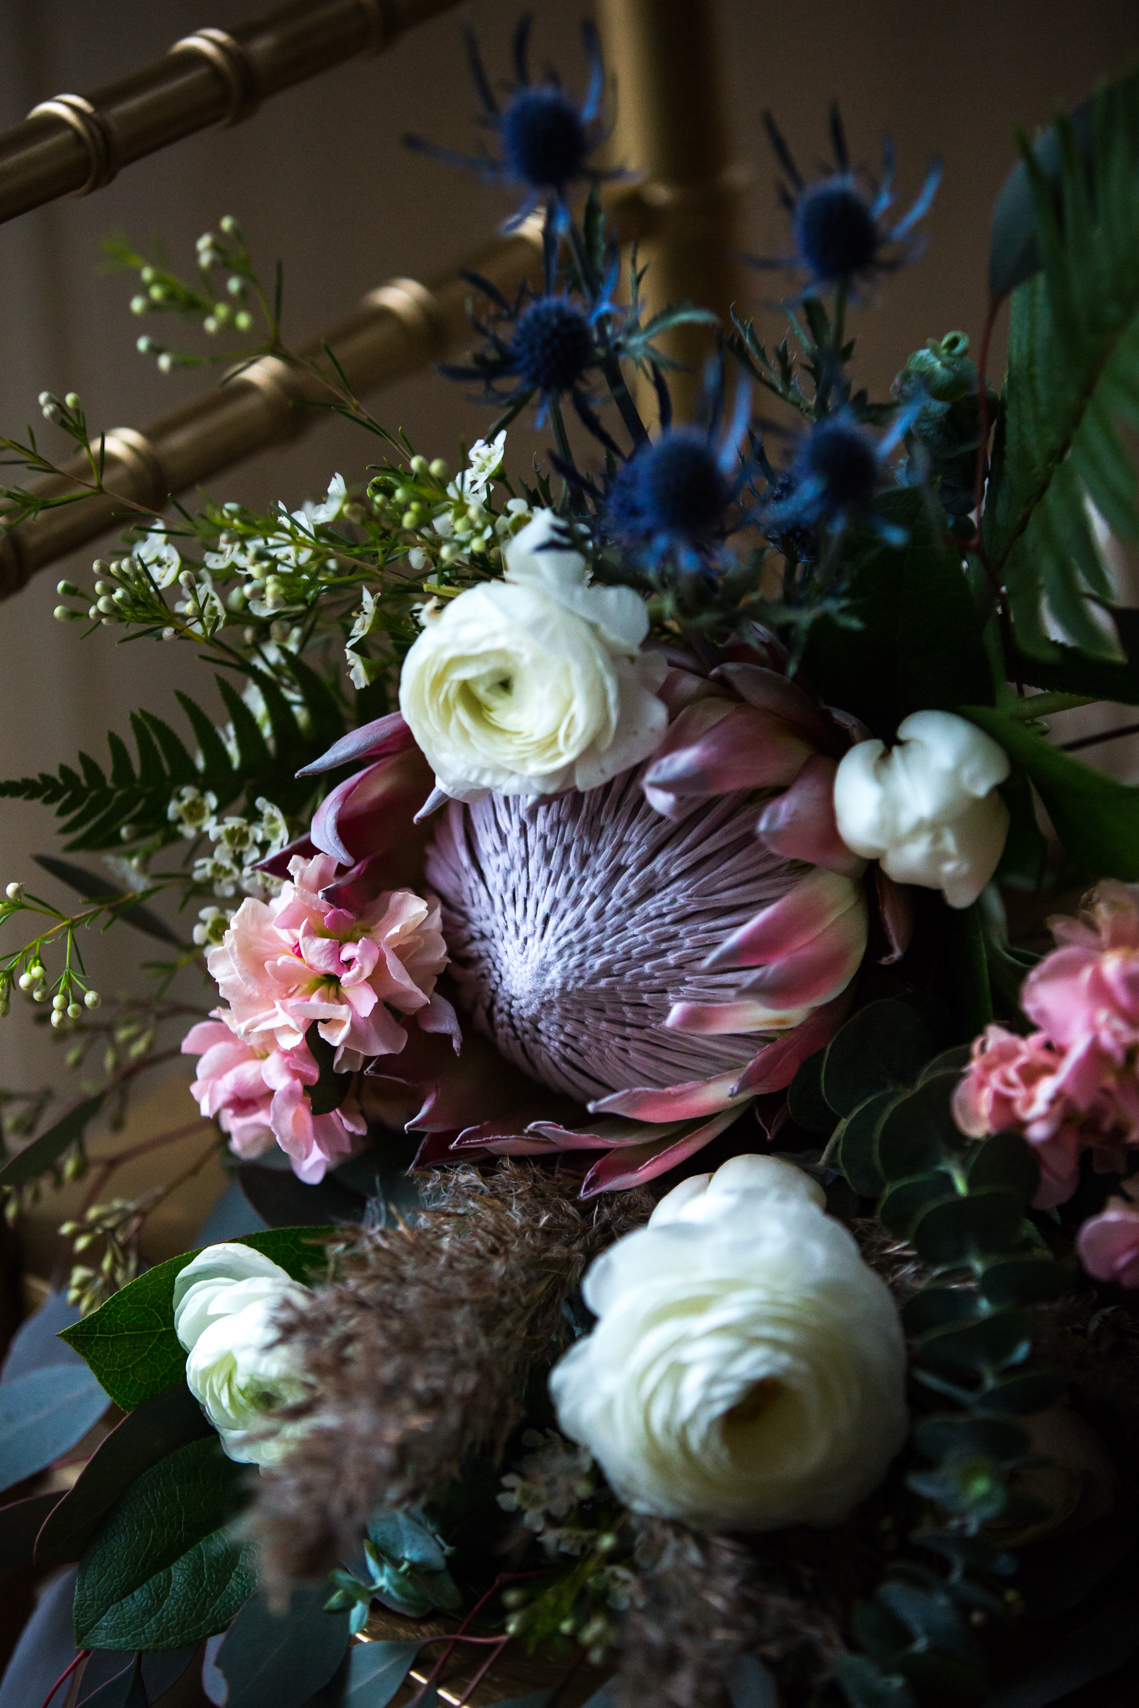 Wedding floral arrangement in natural light at the Cylburn Arboretum in Baltimore Maryland